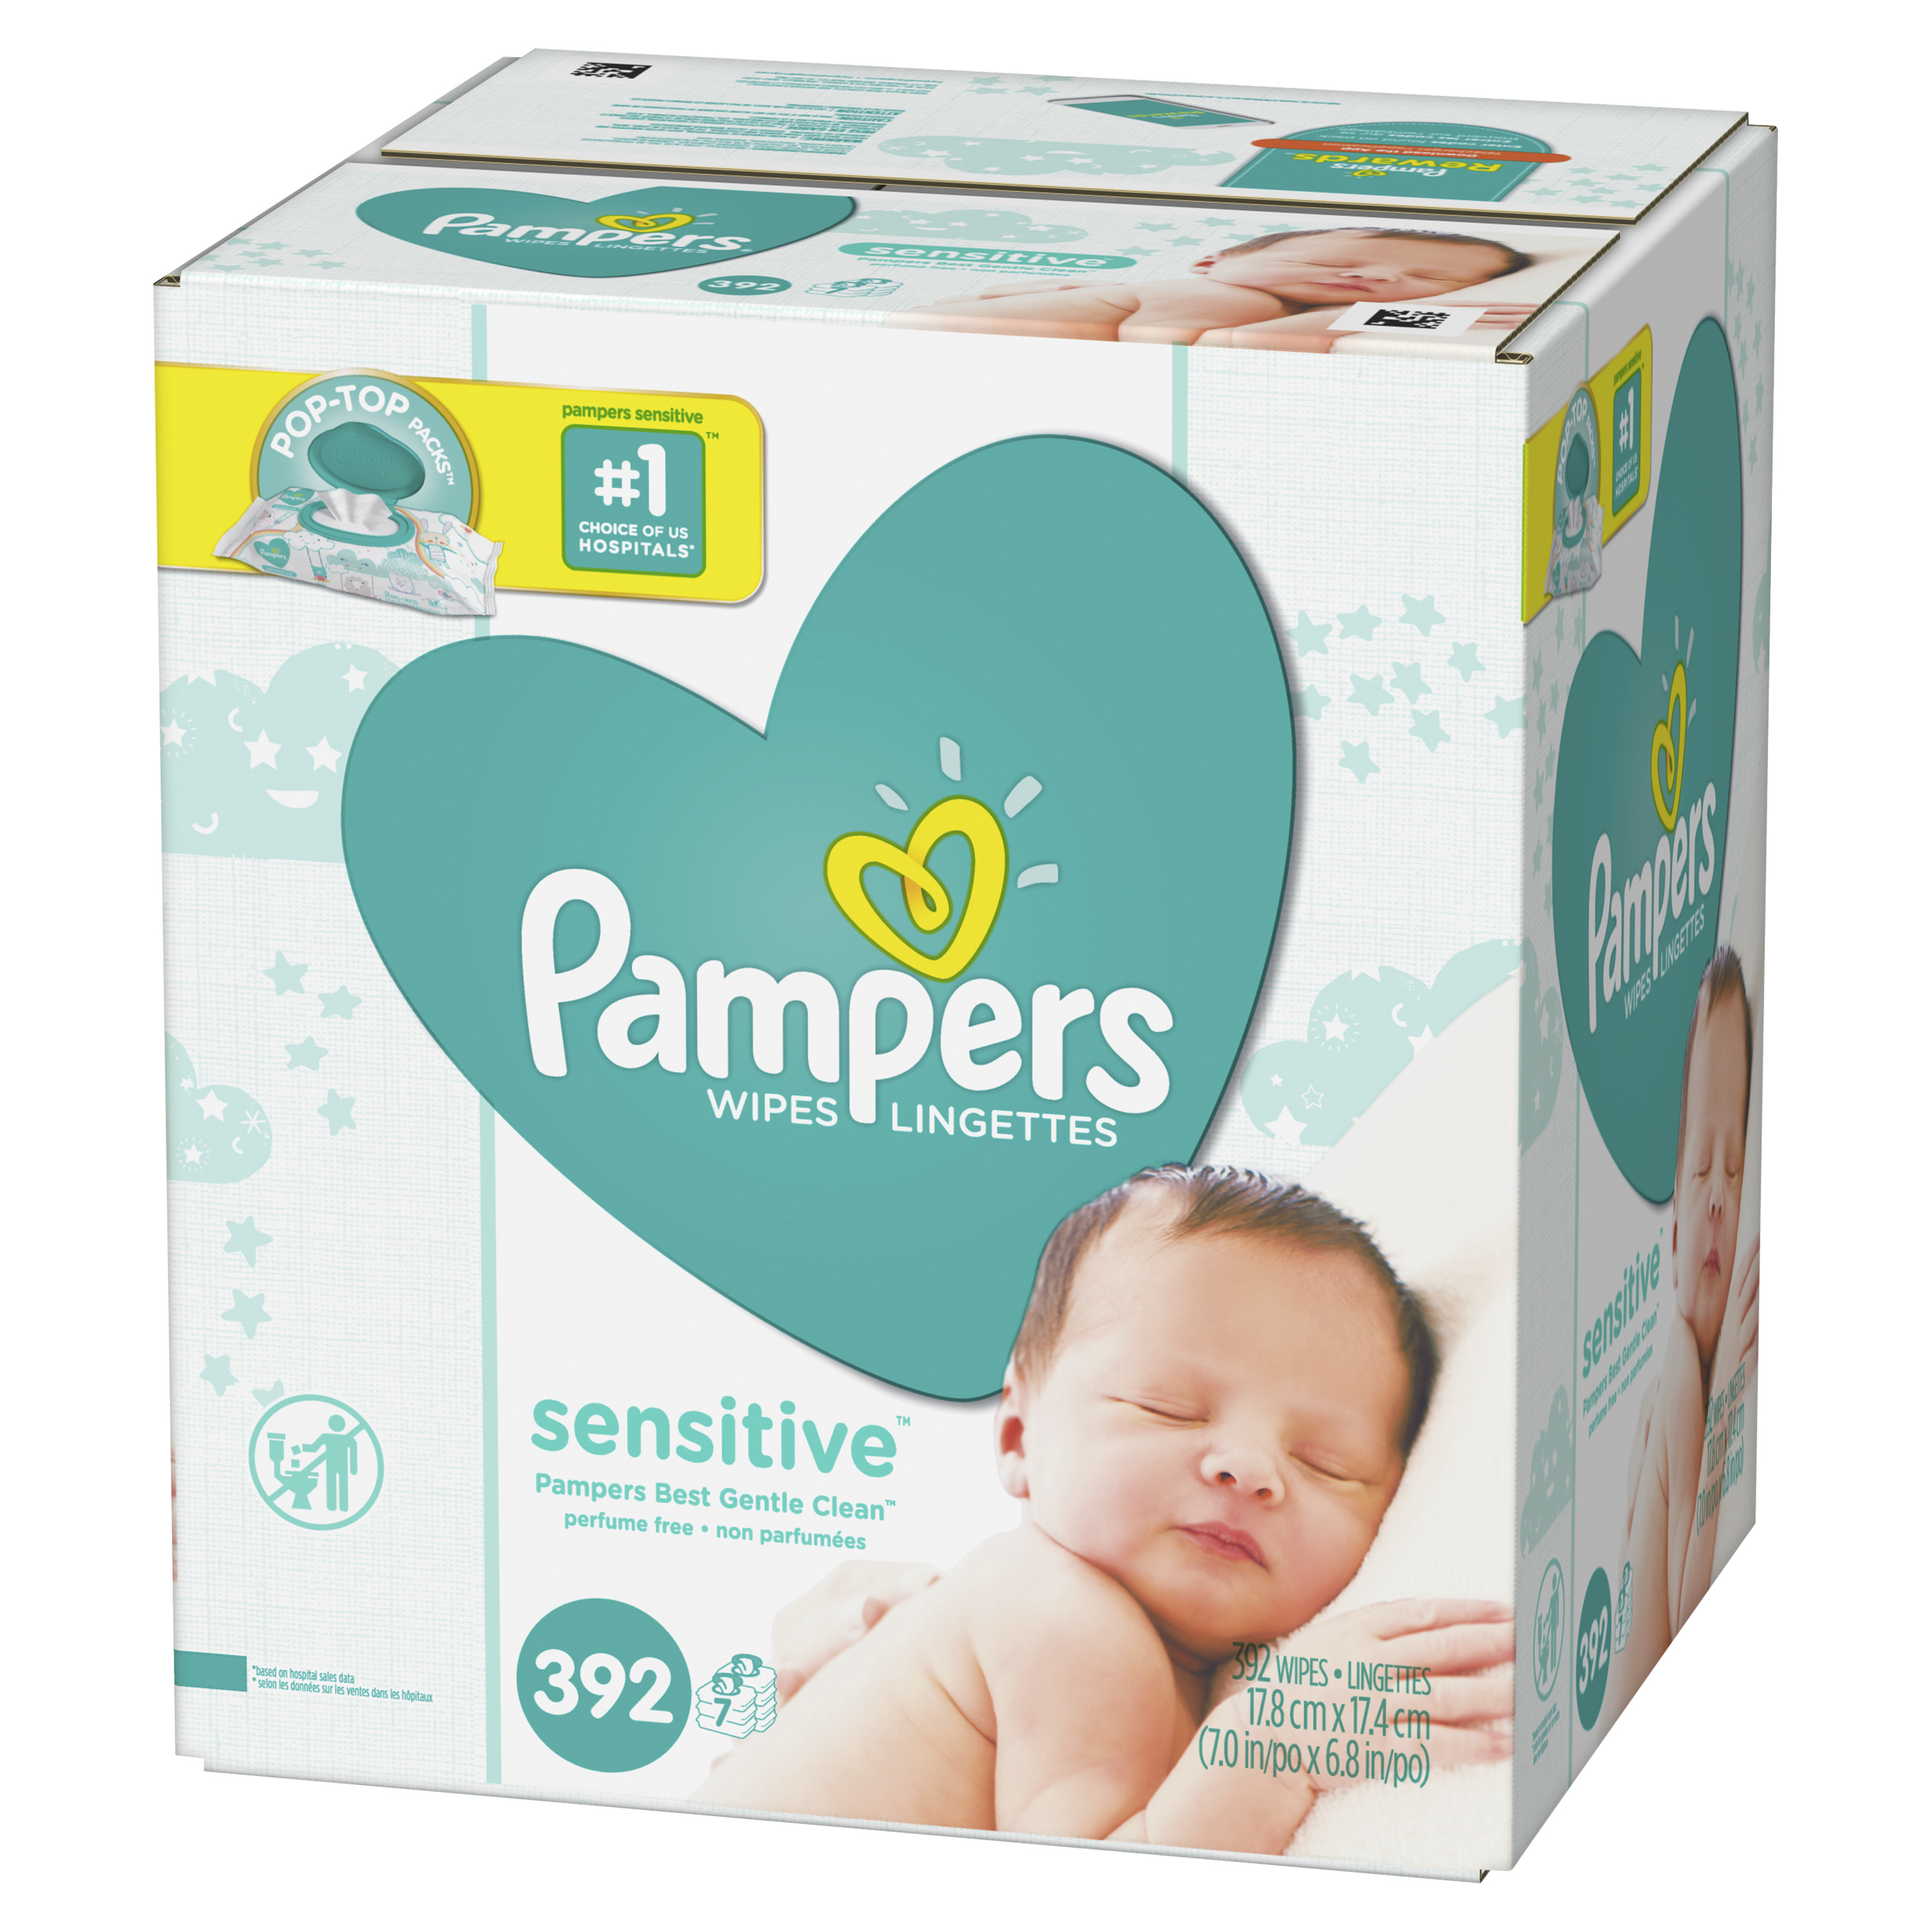 Pampers Baby Wipes, Sensitive, 7X Pop-Top Packs, 392 Count